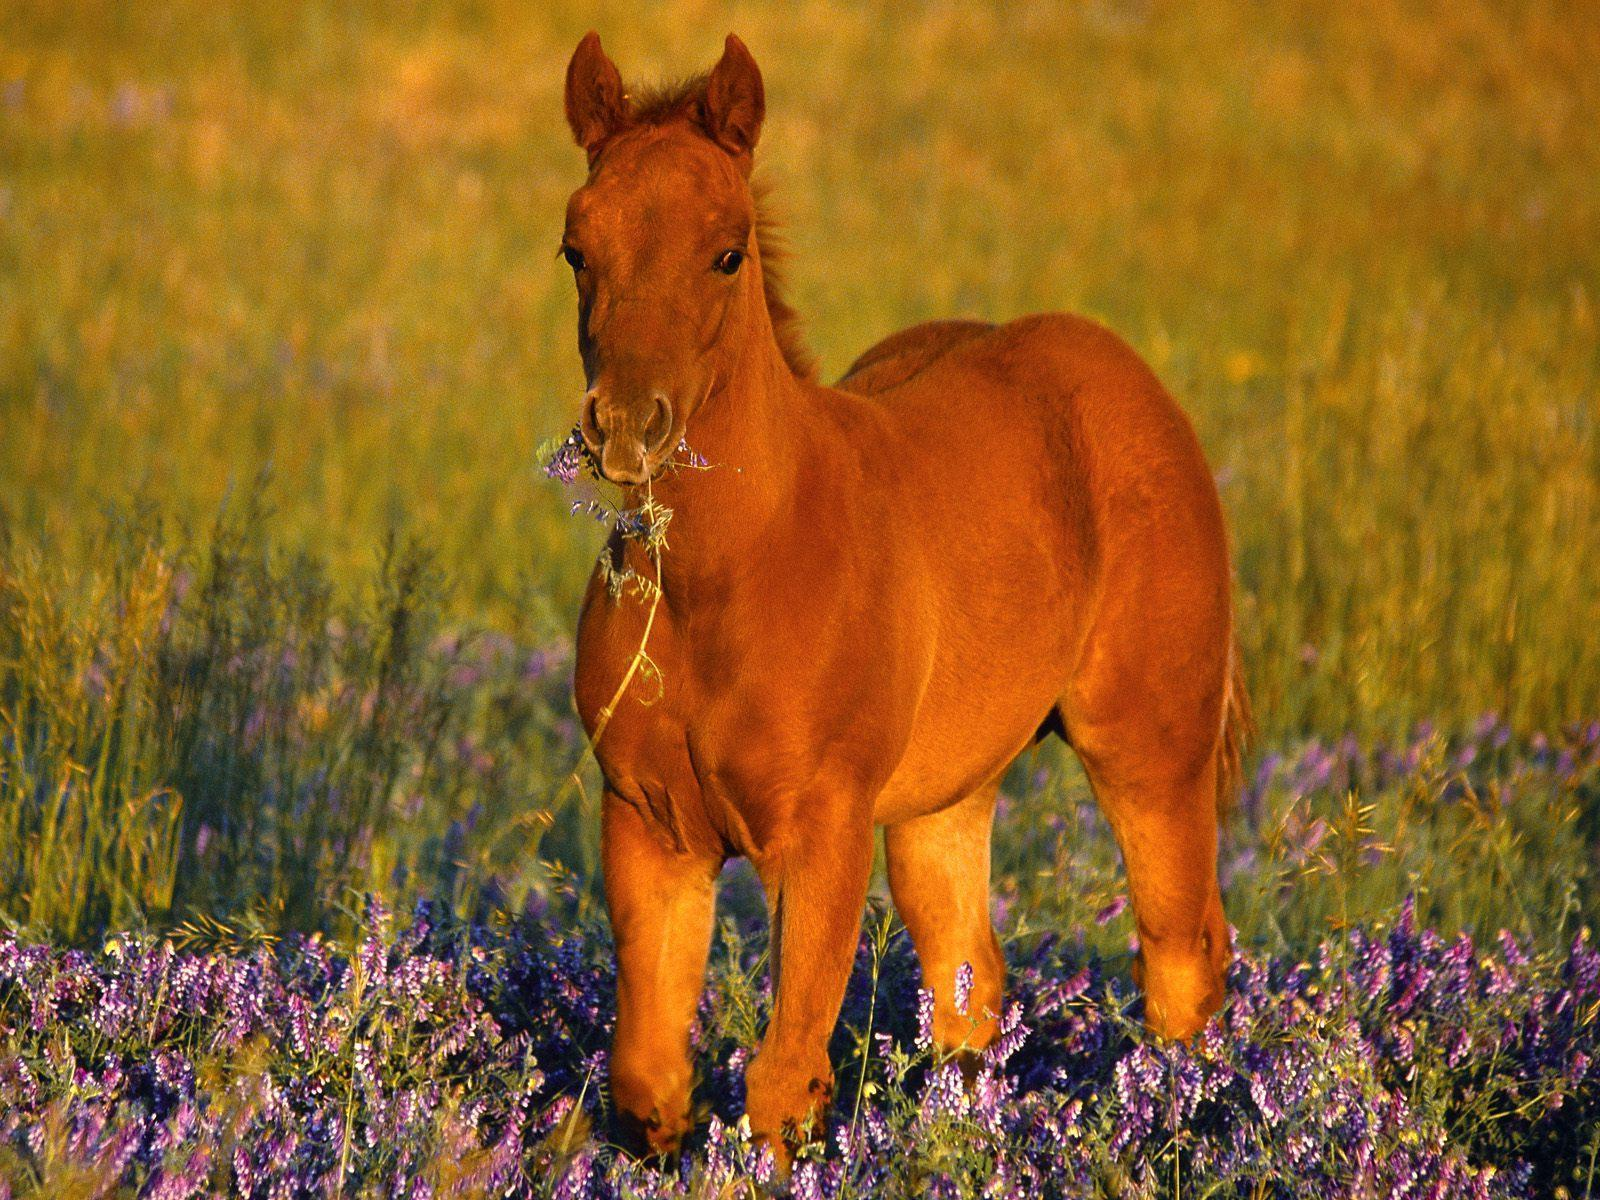 Quarter Horse wallpapers HD